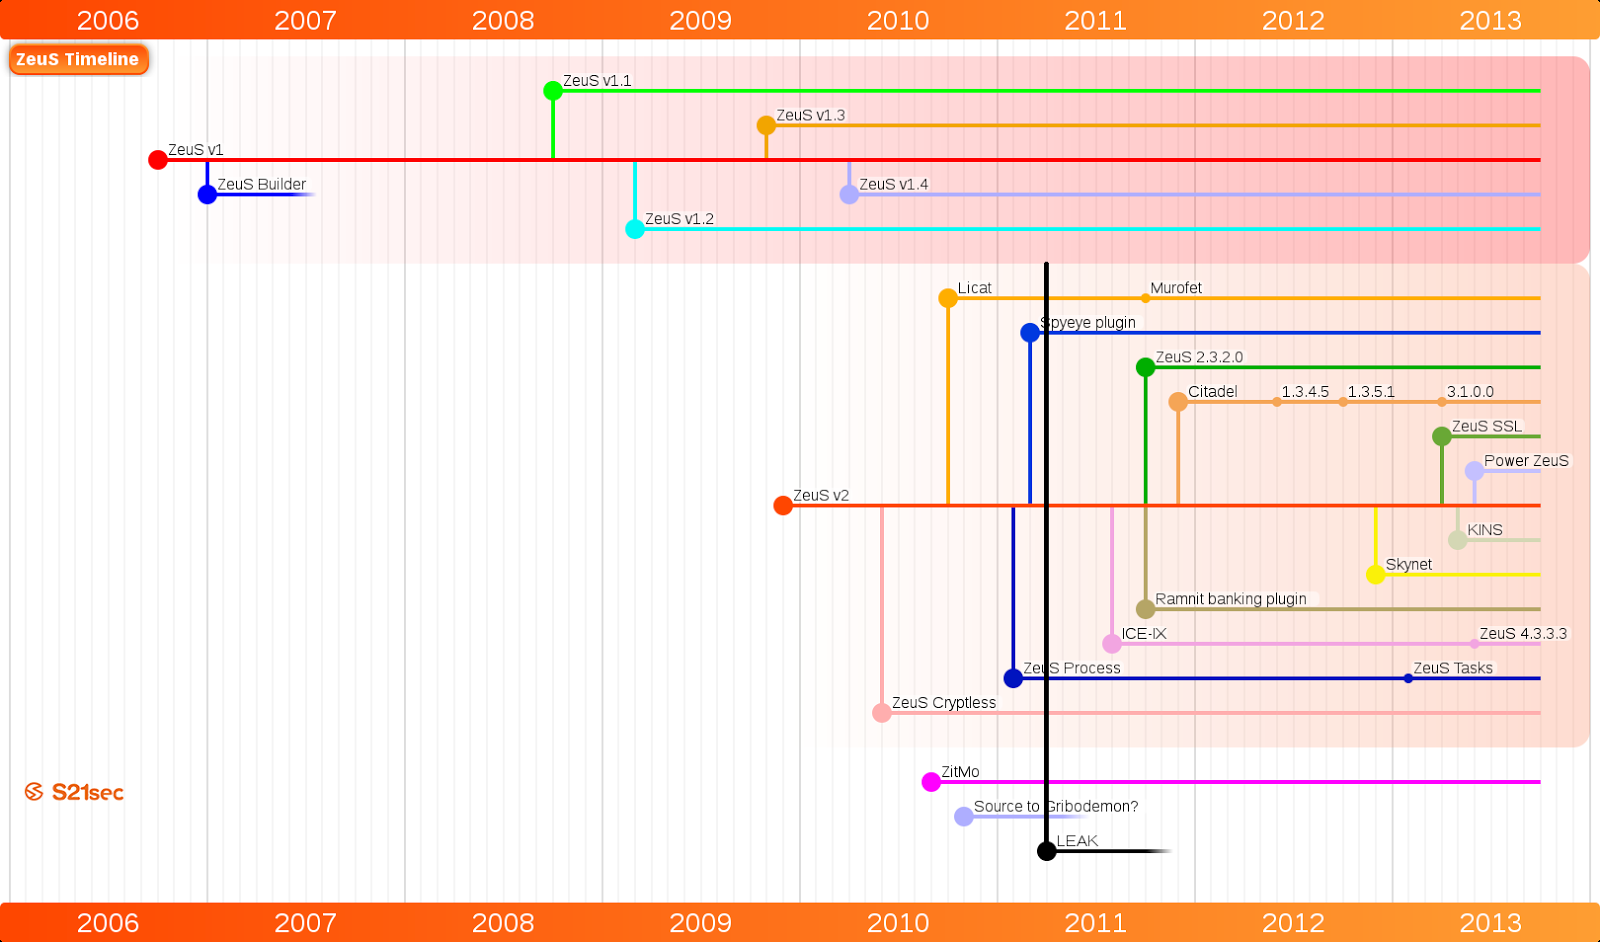 Timeline of Zeus and its variants